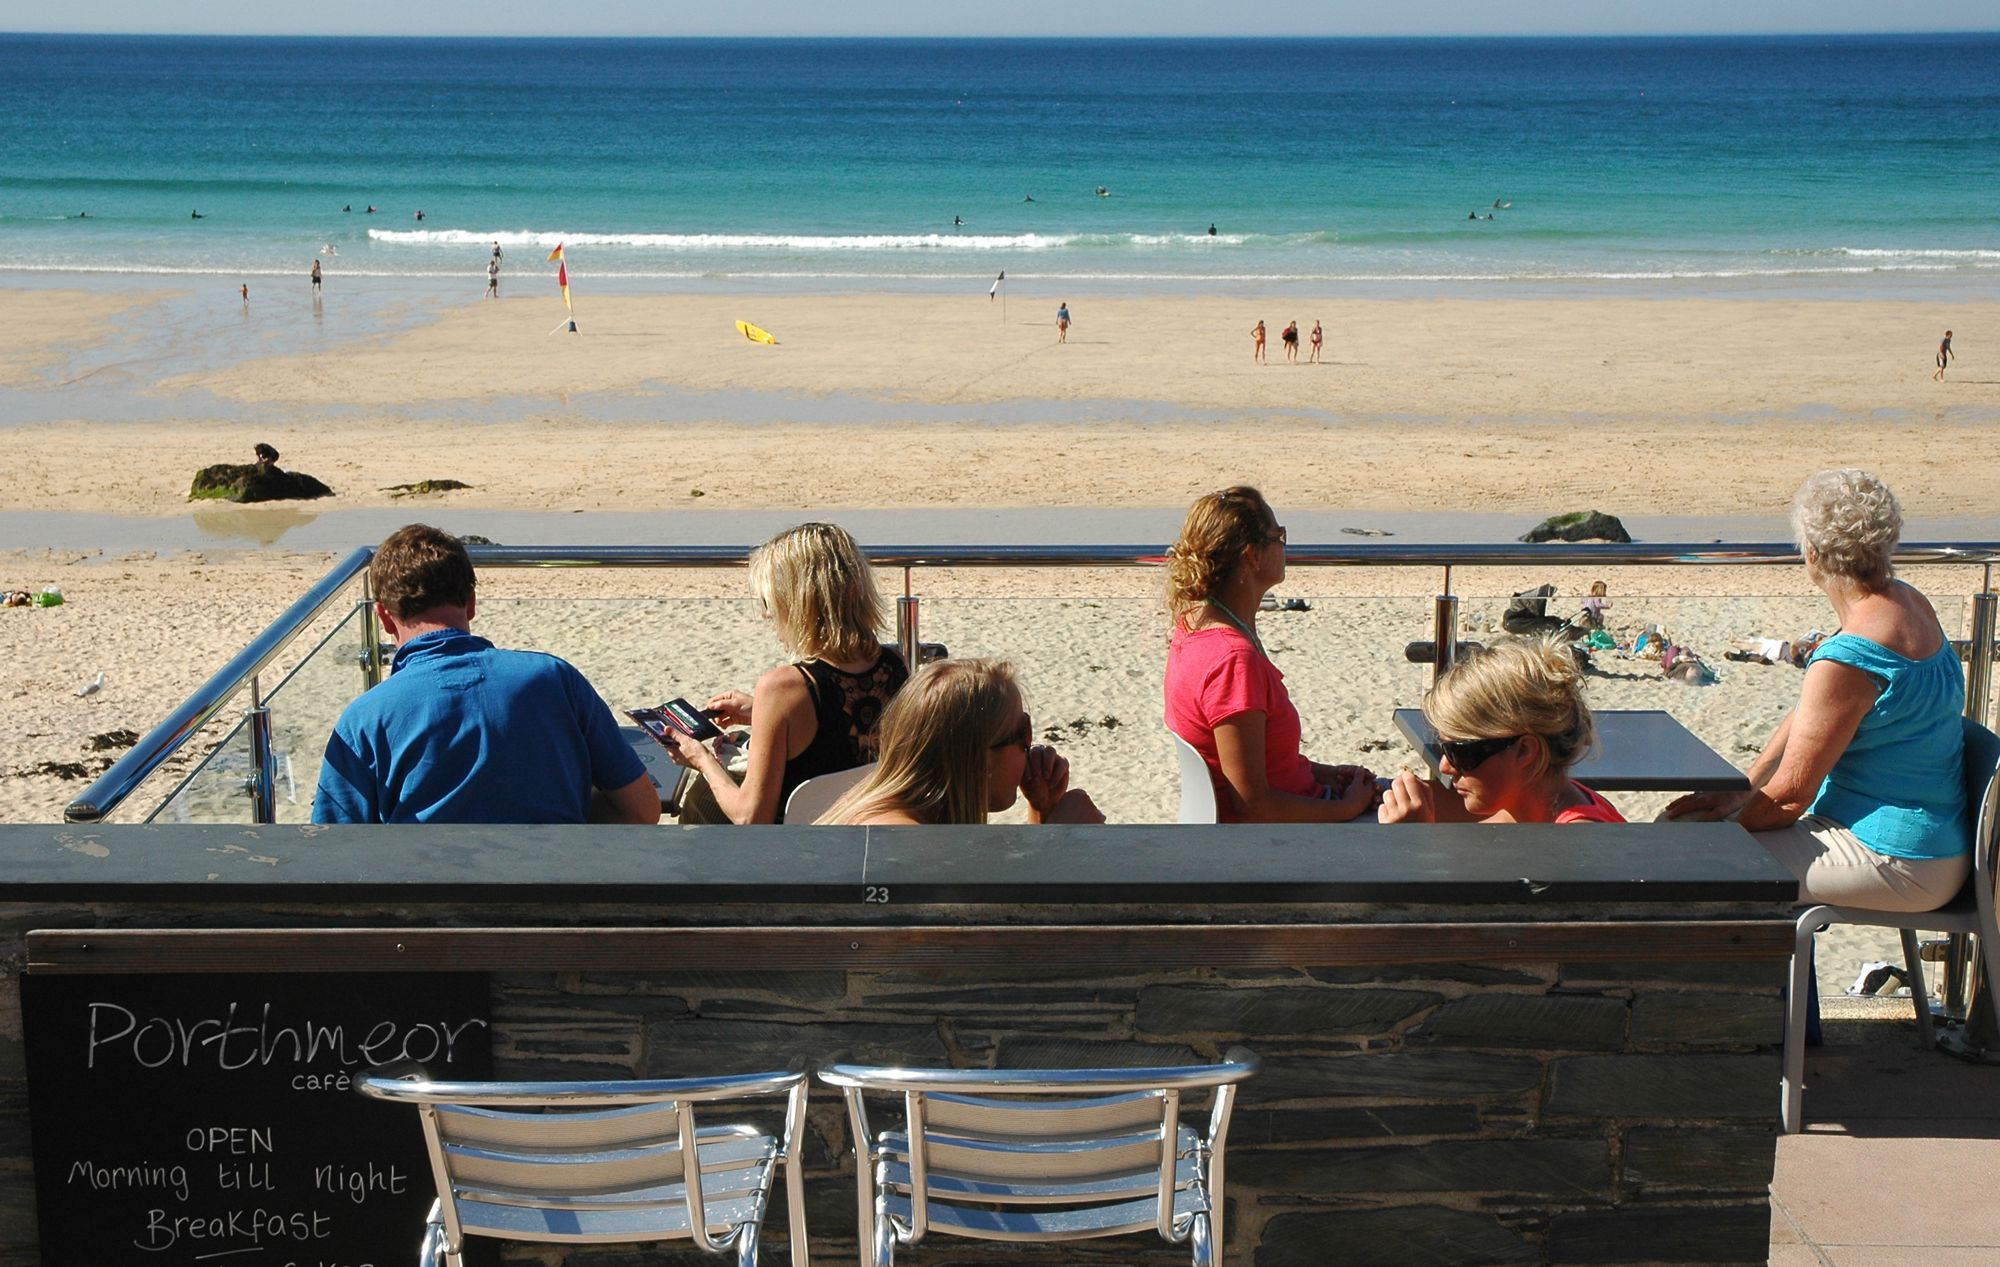 The 10 Best Seaside Cafés in Cornwall